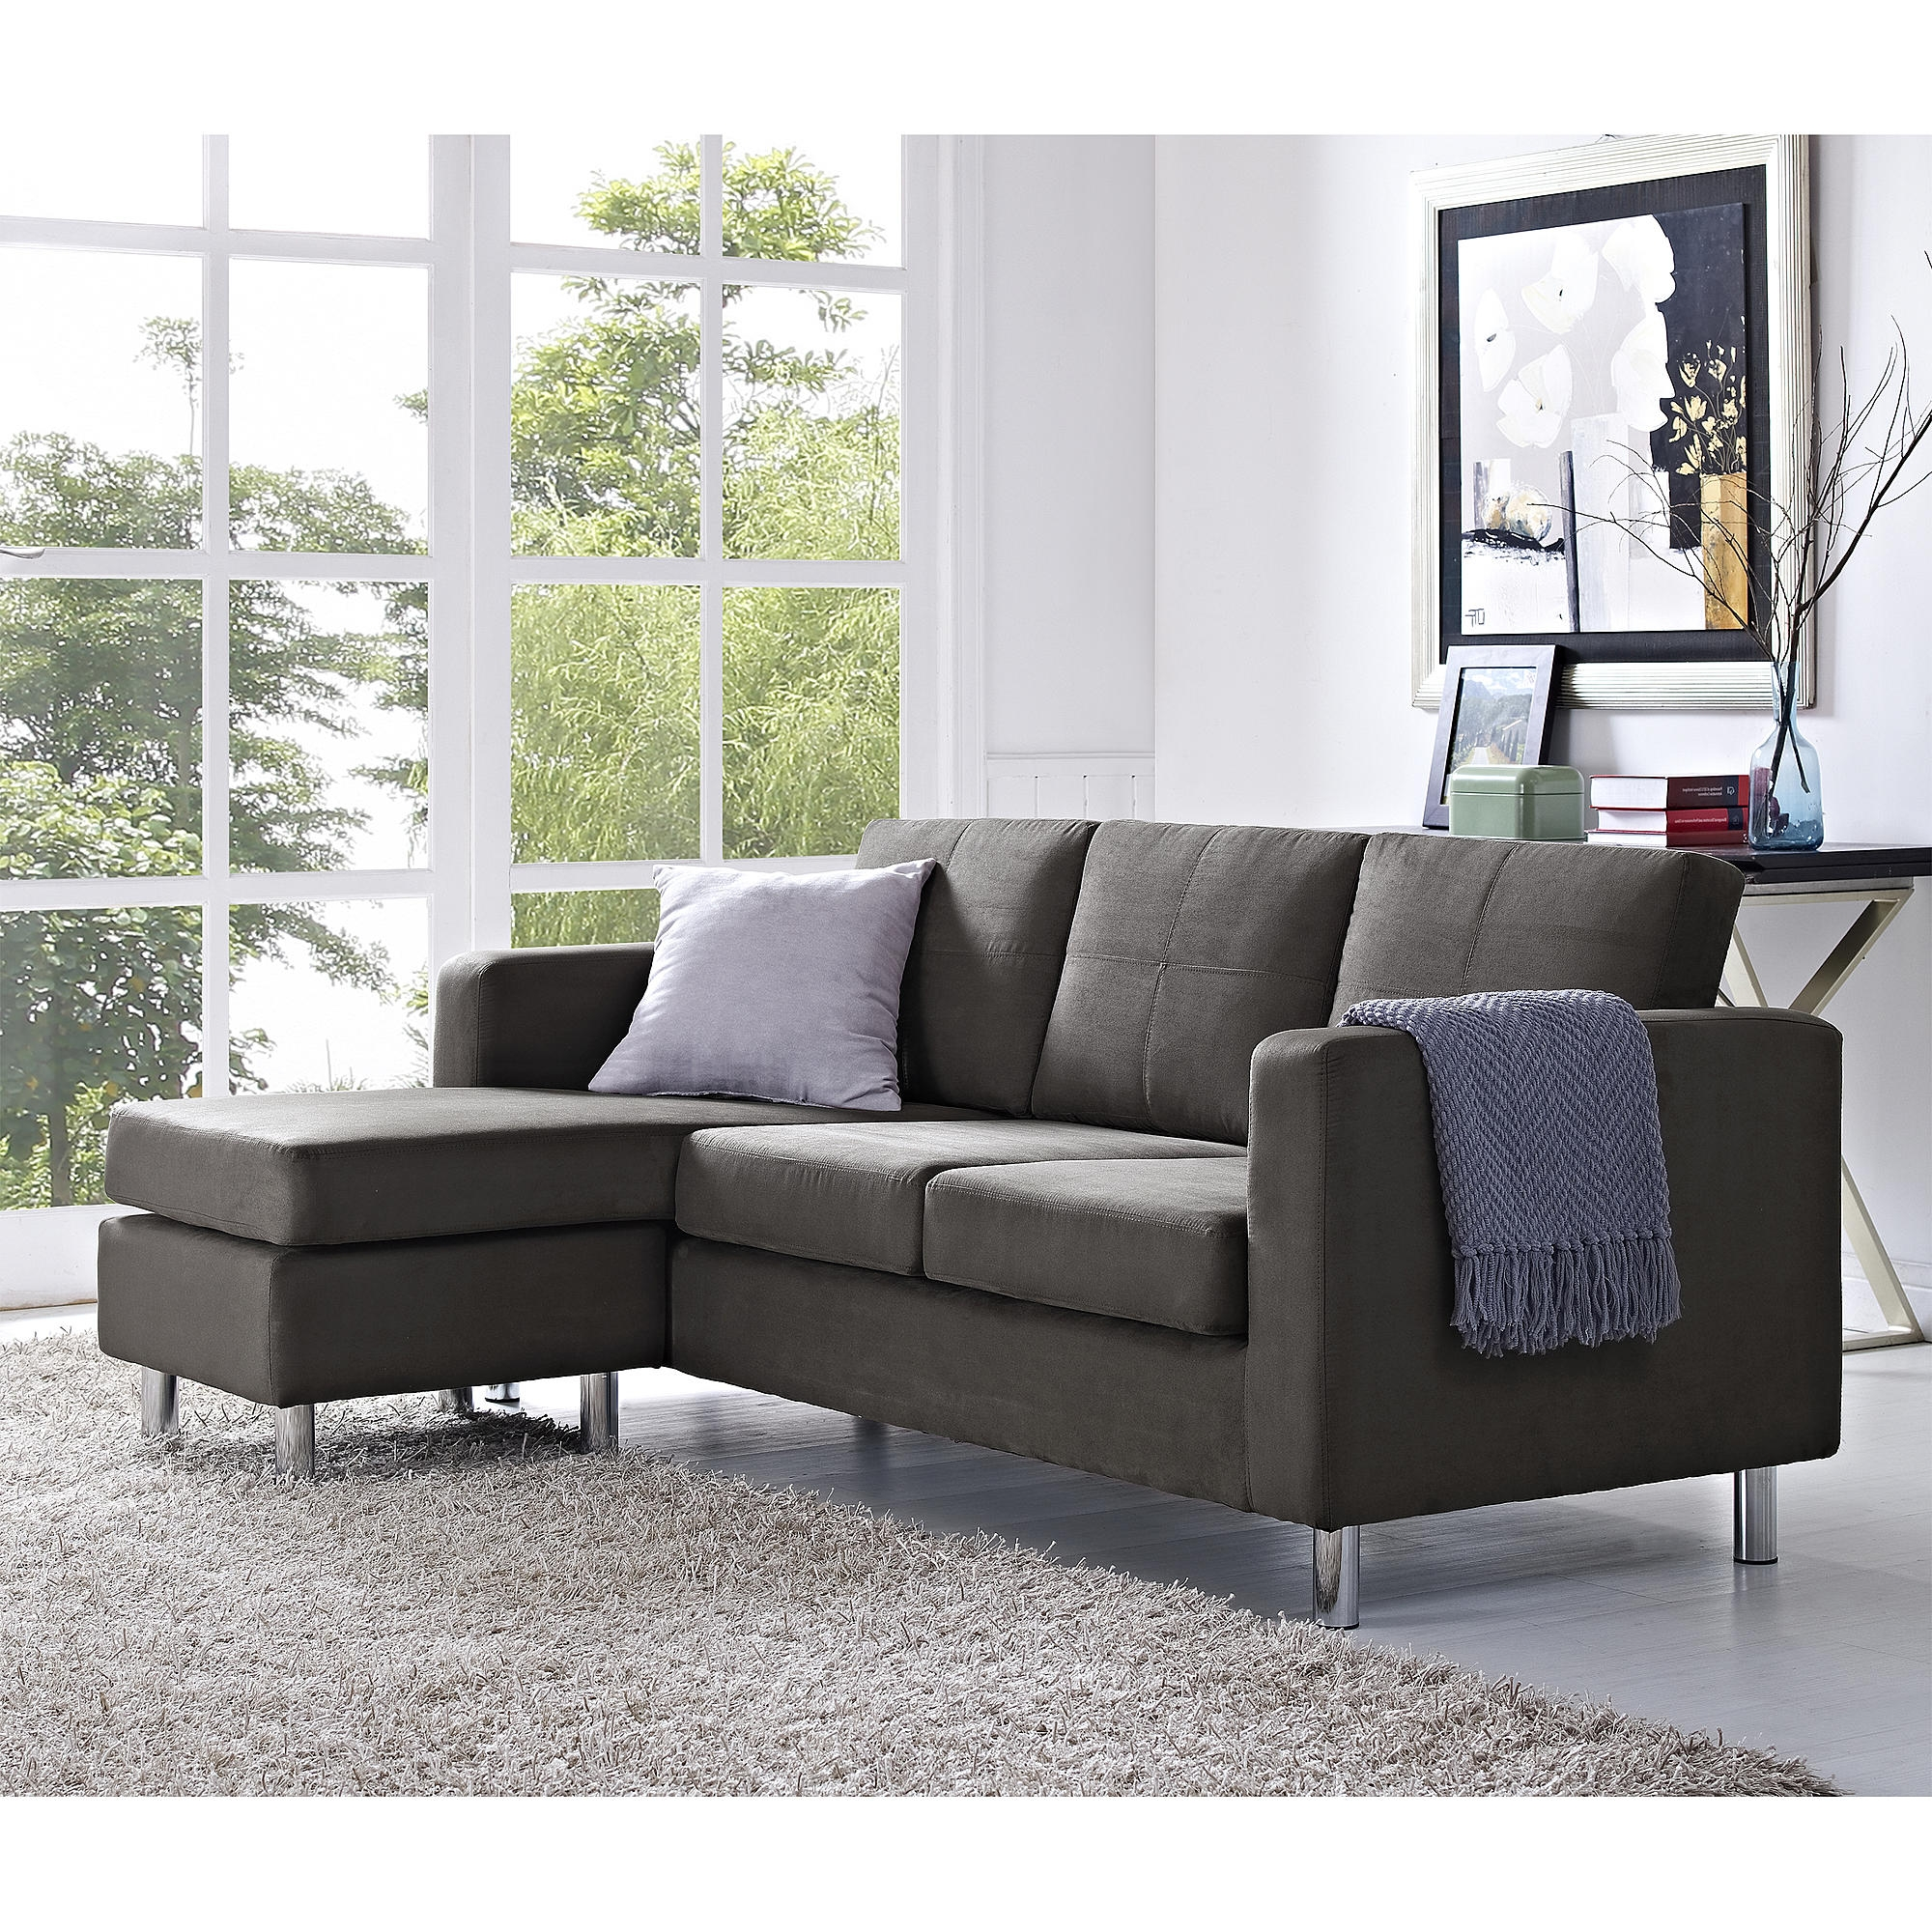 Small Spaces Configurable Sectional Sofa Dorel Home Furnishings Intended For Durable Sectional Sofa (Image 14 of 15)